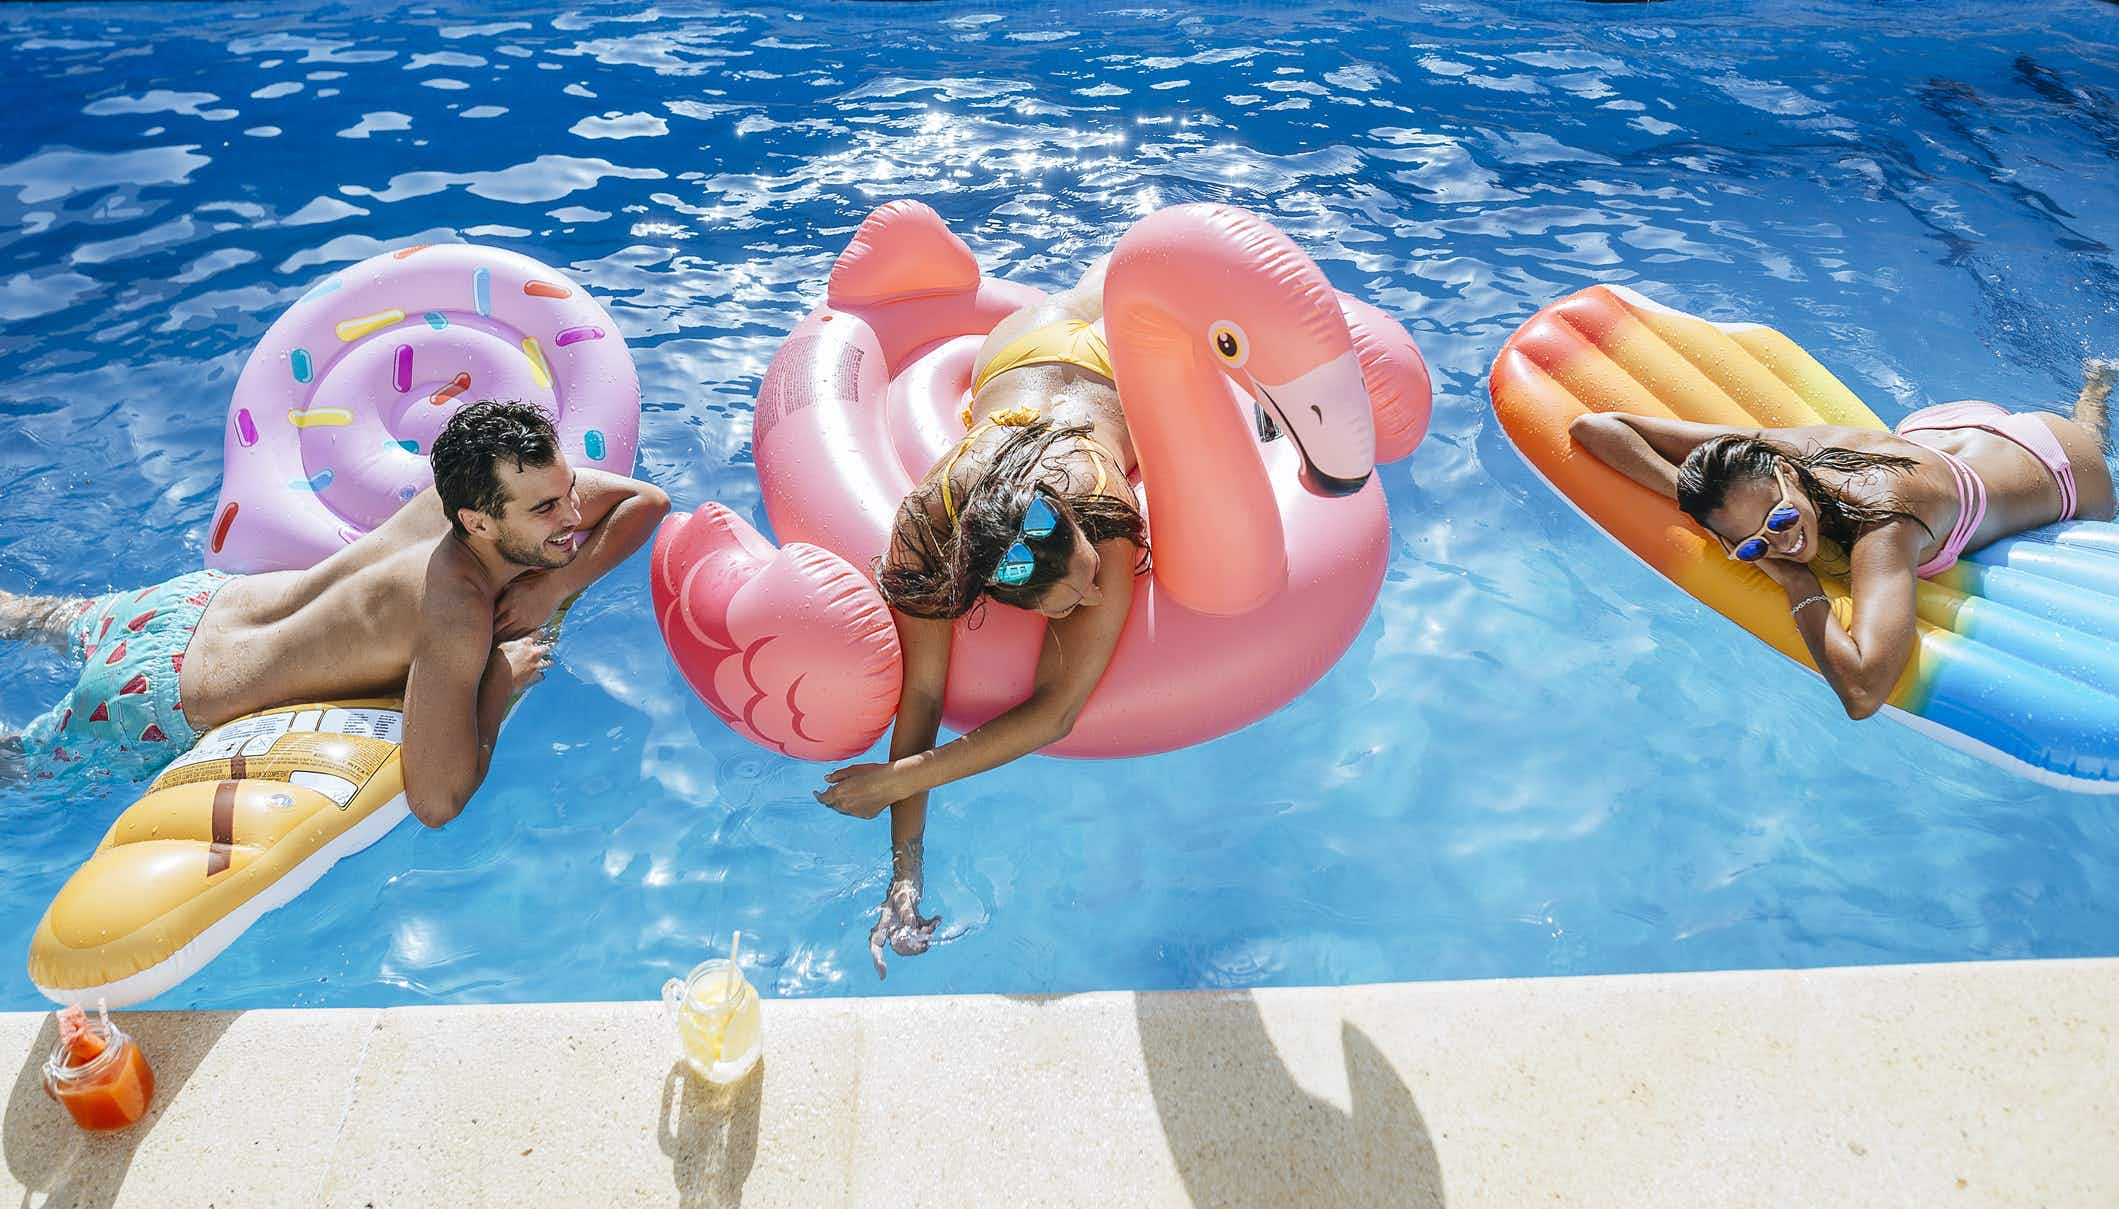 Pool toys are given a second life at this hotel's 'inflatable sanctuary'